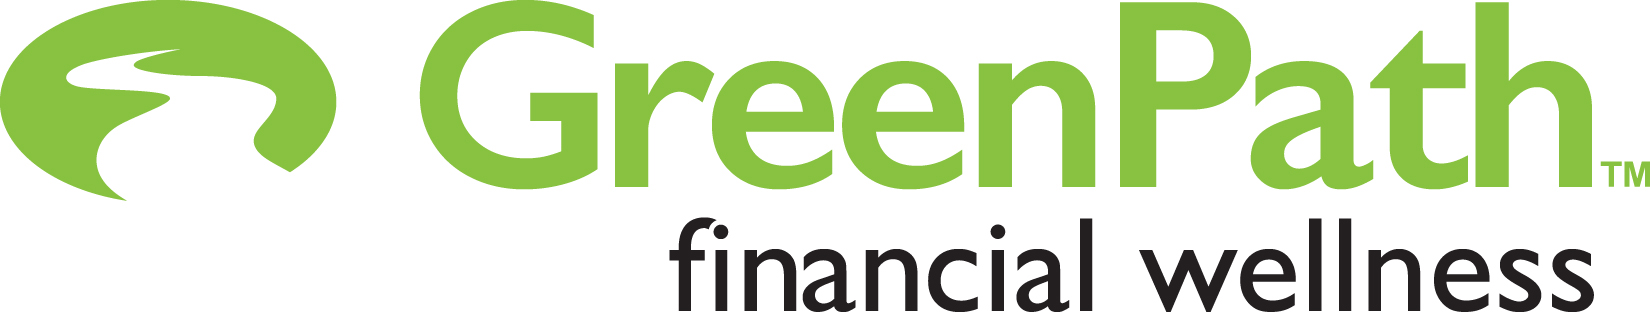 GreenPath Financial Wellness Logo | GP Partners